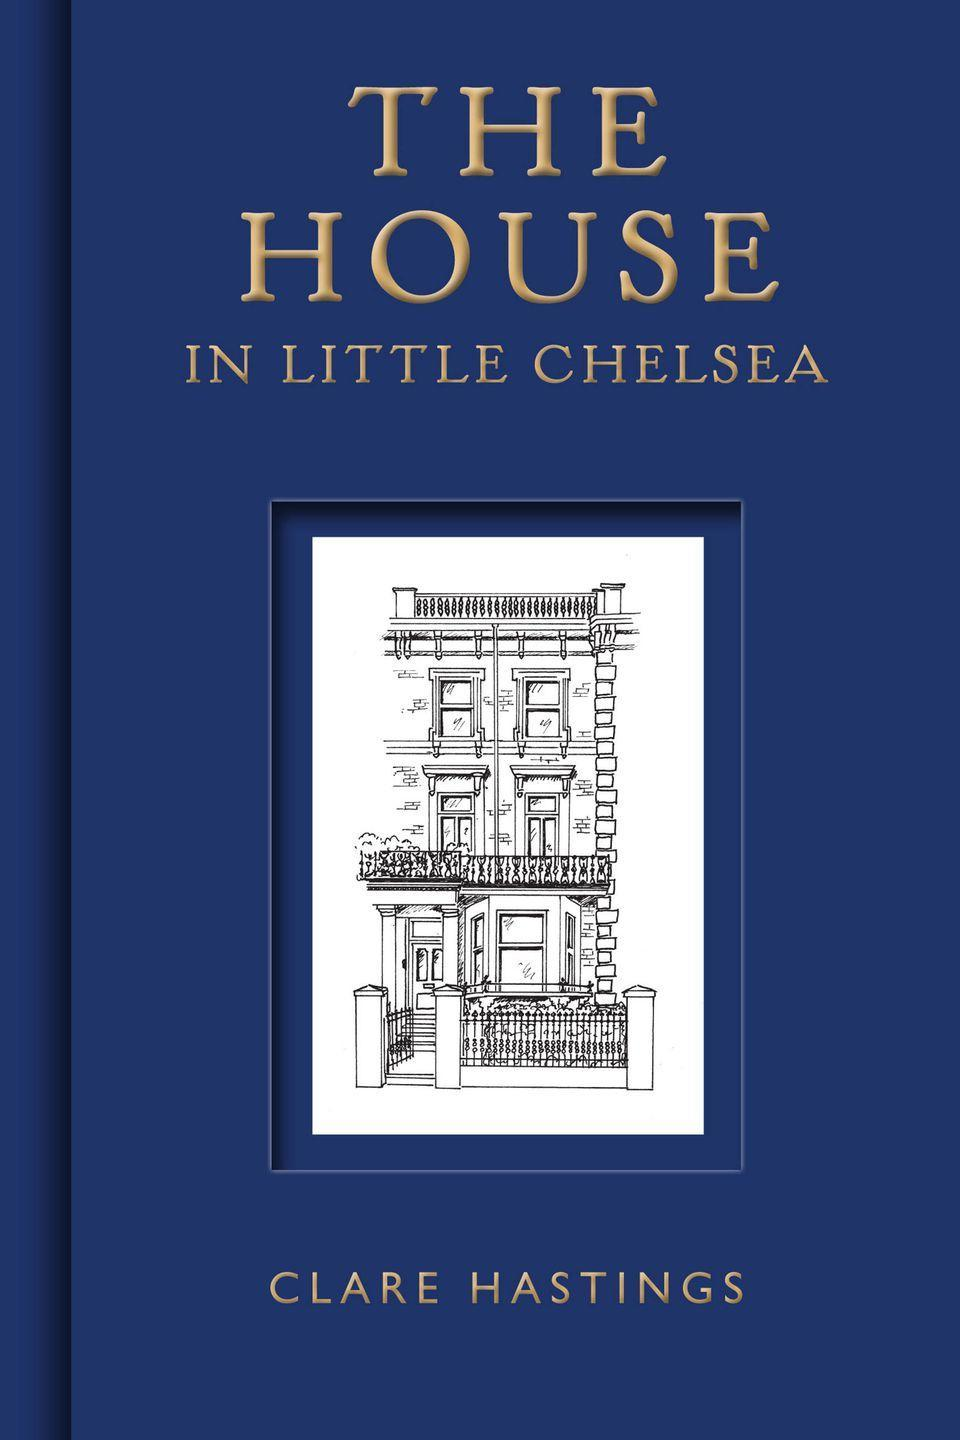 "<p><a href=""http://foyles.co.uk/witem/fiction-poetry/the-house-in-little-chelsea,clare-hastings-9781910258965"" rel=""nofollow noopener"" target=""_blank"" data-ylk=""slk:BUY NOW"" class=""link rapid-noclick-resp"">BUY NOW</a></p><p>""This beguiling little book mixes fact and fiction to recreate the life of a house in Chelsea – the house in which the author lives – from 1873 to the 1920s. Perfect Christmas present for aunts, and everyone else really.""</p><p><em>The House in Little Chelsea by Clare Hastings, £12.99, <a href=""http://foyles.co.uk/witem/fiction-poetry/the-house-in-little-chelsea,clare-hastings-9781910258965"" rel=""nofollow noopener"" target=""_blank"" data-ylk=""slk:Foyles"" class=""link rapid-noclick-resp"">Foyles</a></em></p>"